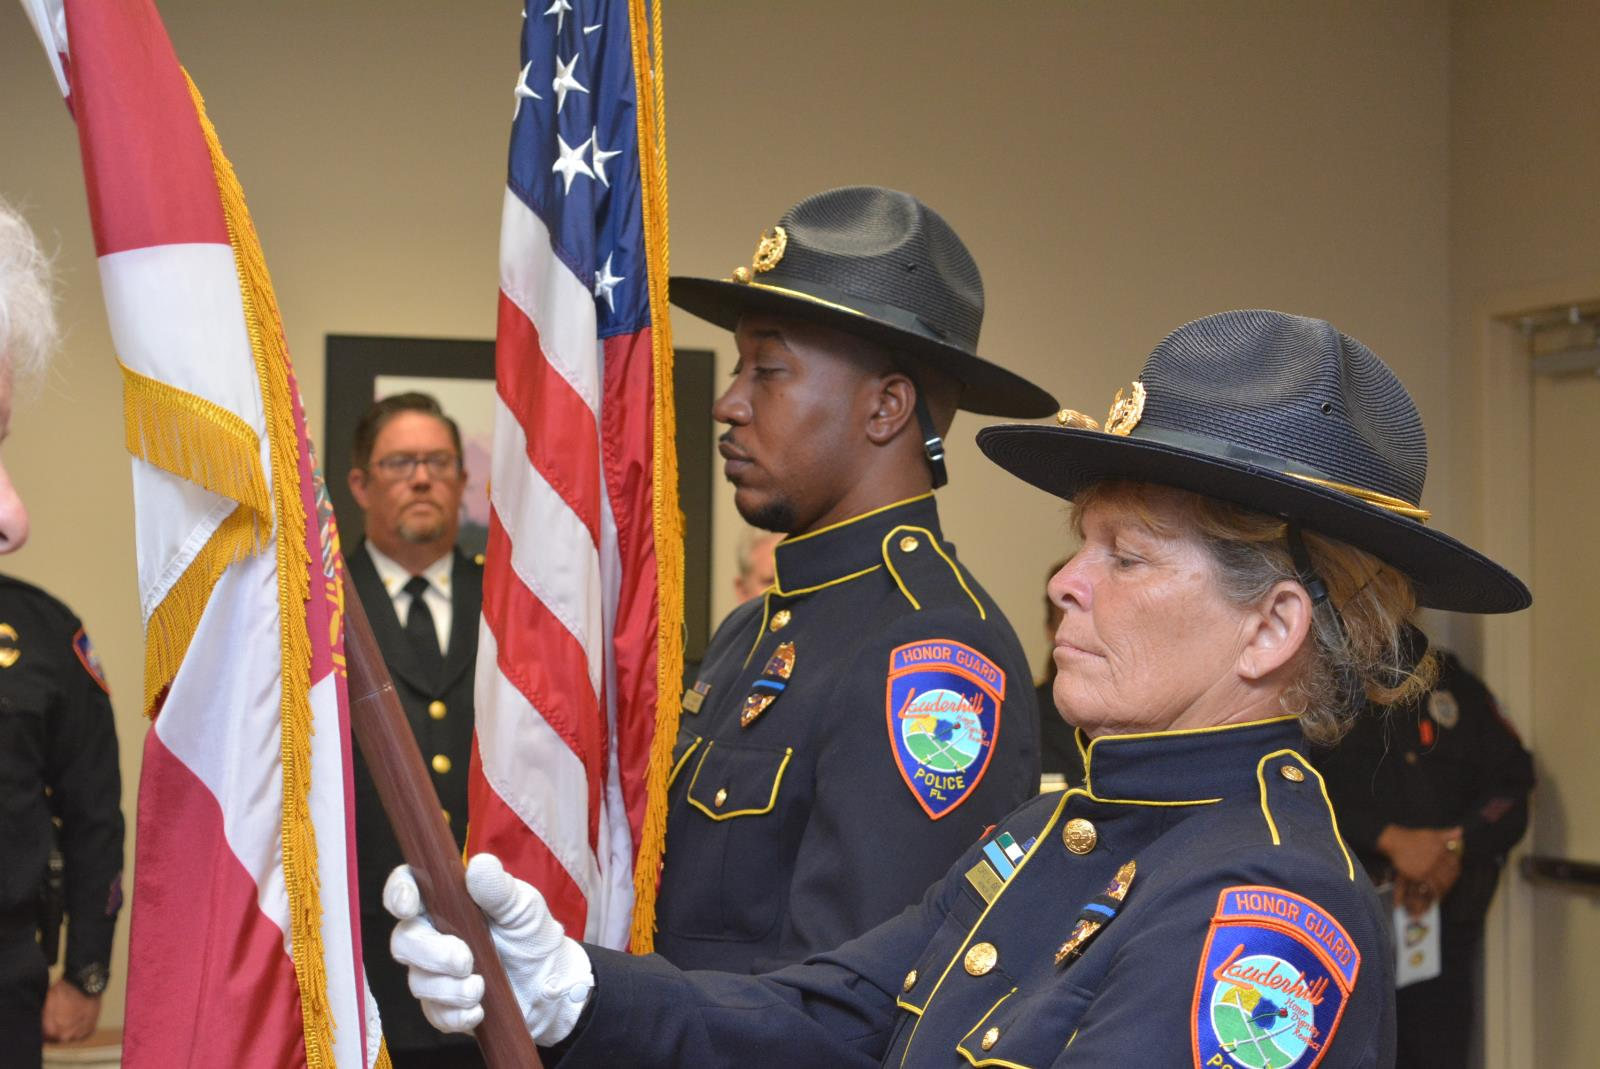 Officers McGriff & Geronimo holding the flags